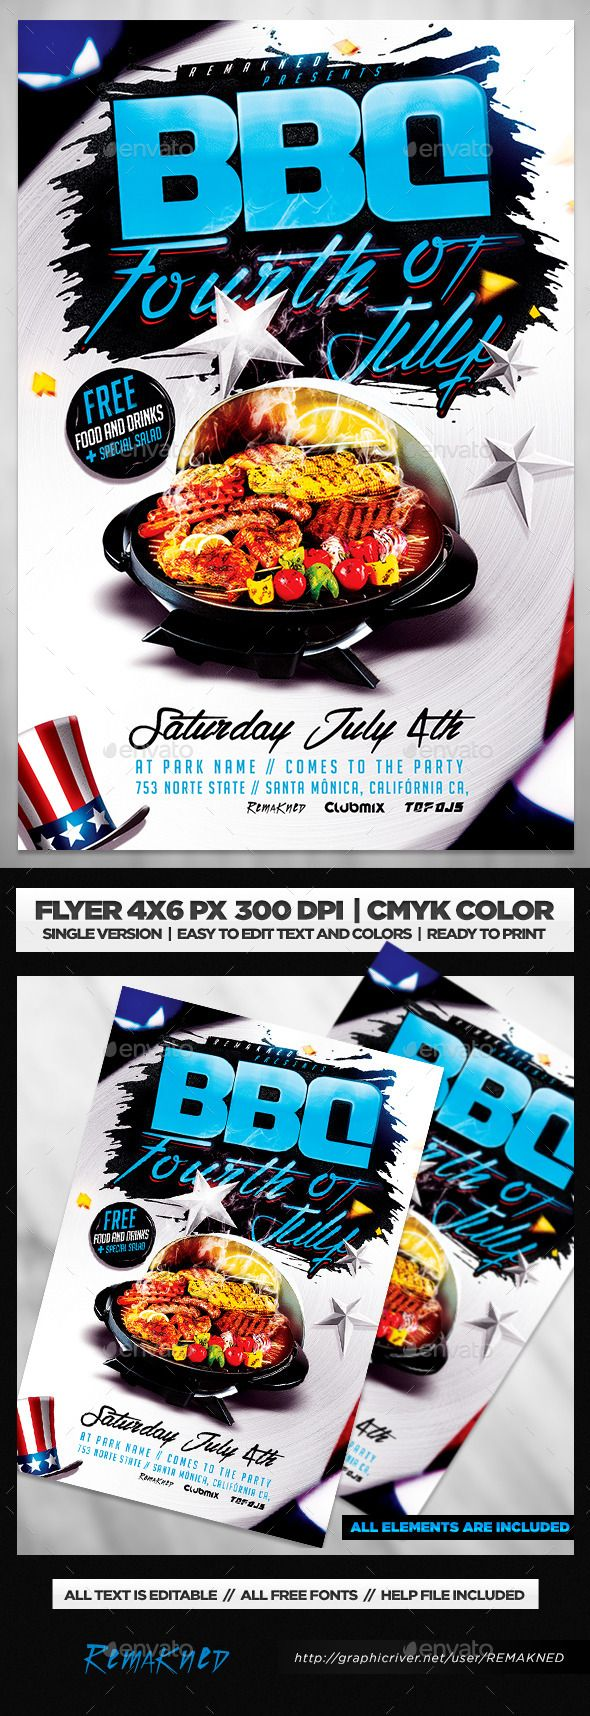 Best Club Images On   Flyer Template Flyer Design